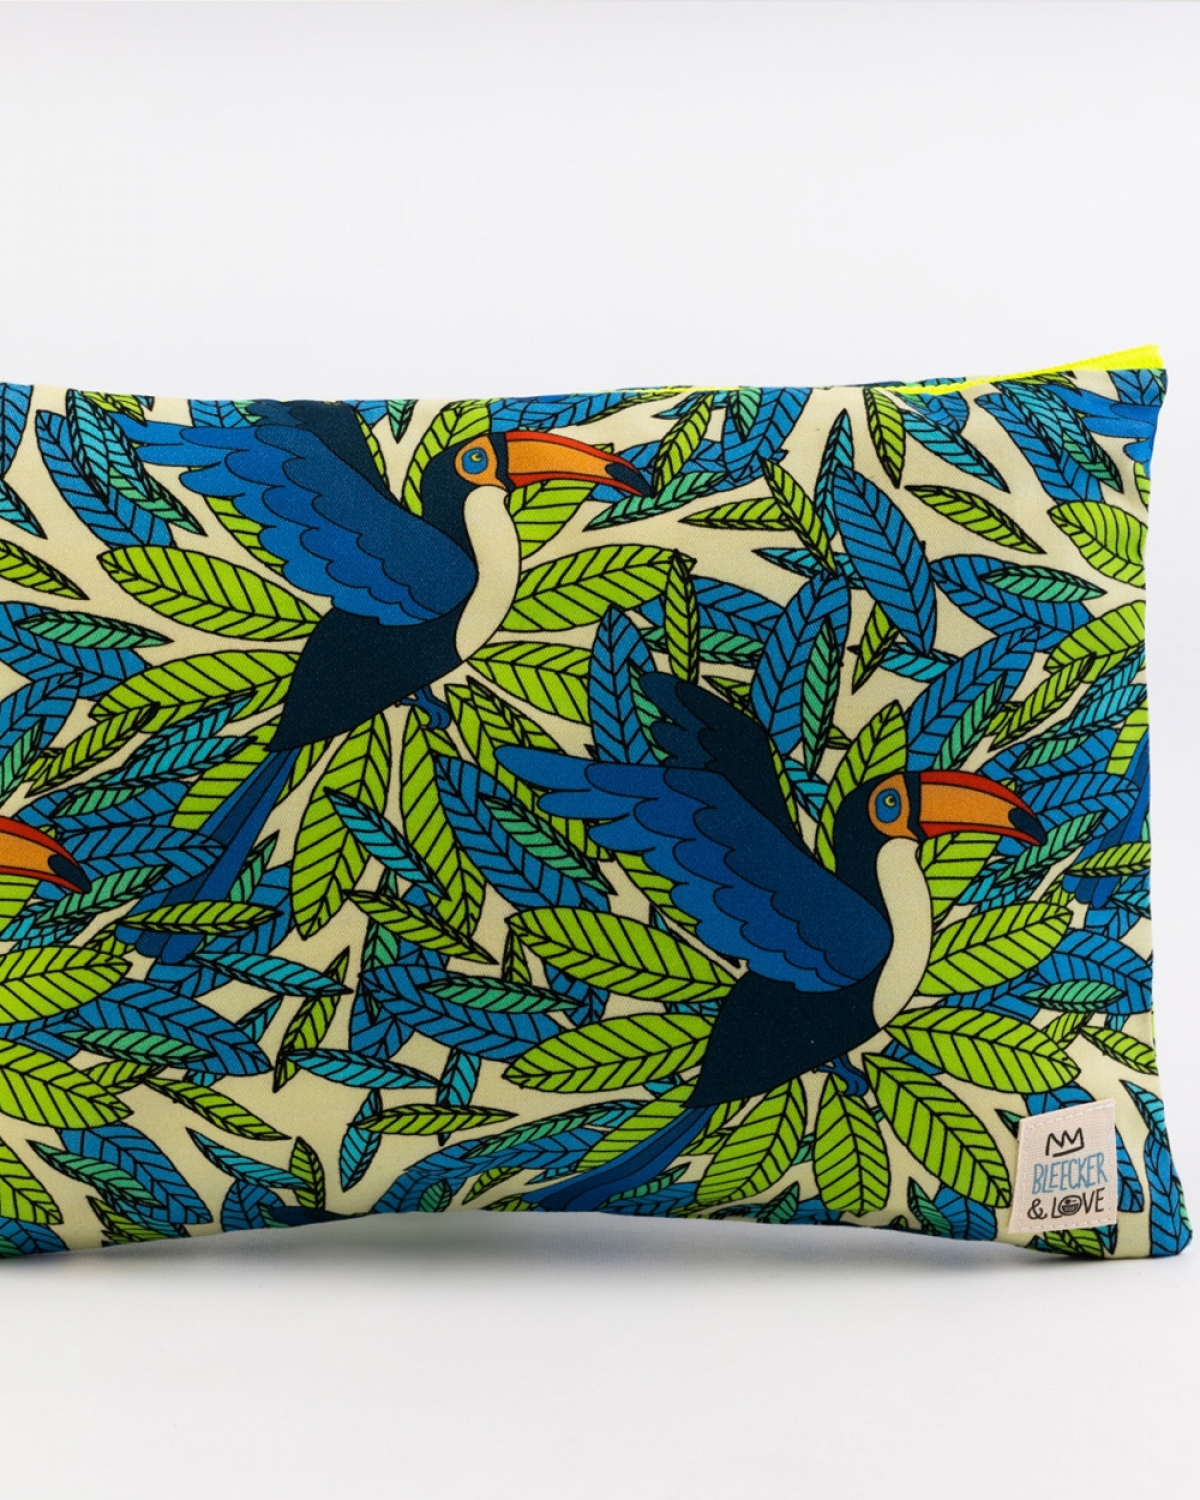 Tucan Medium Clutch